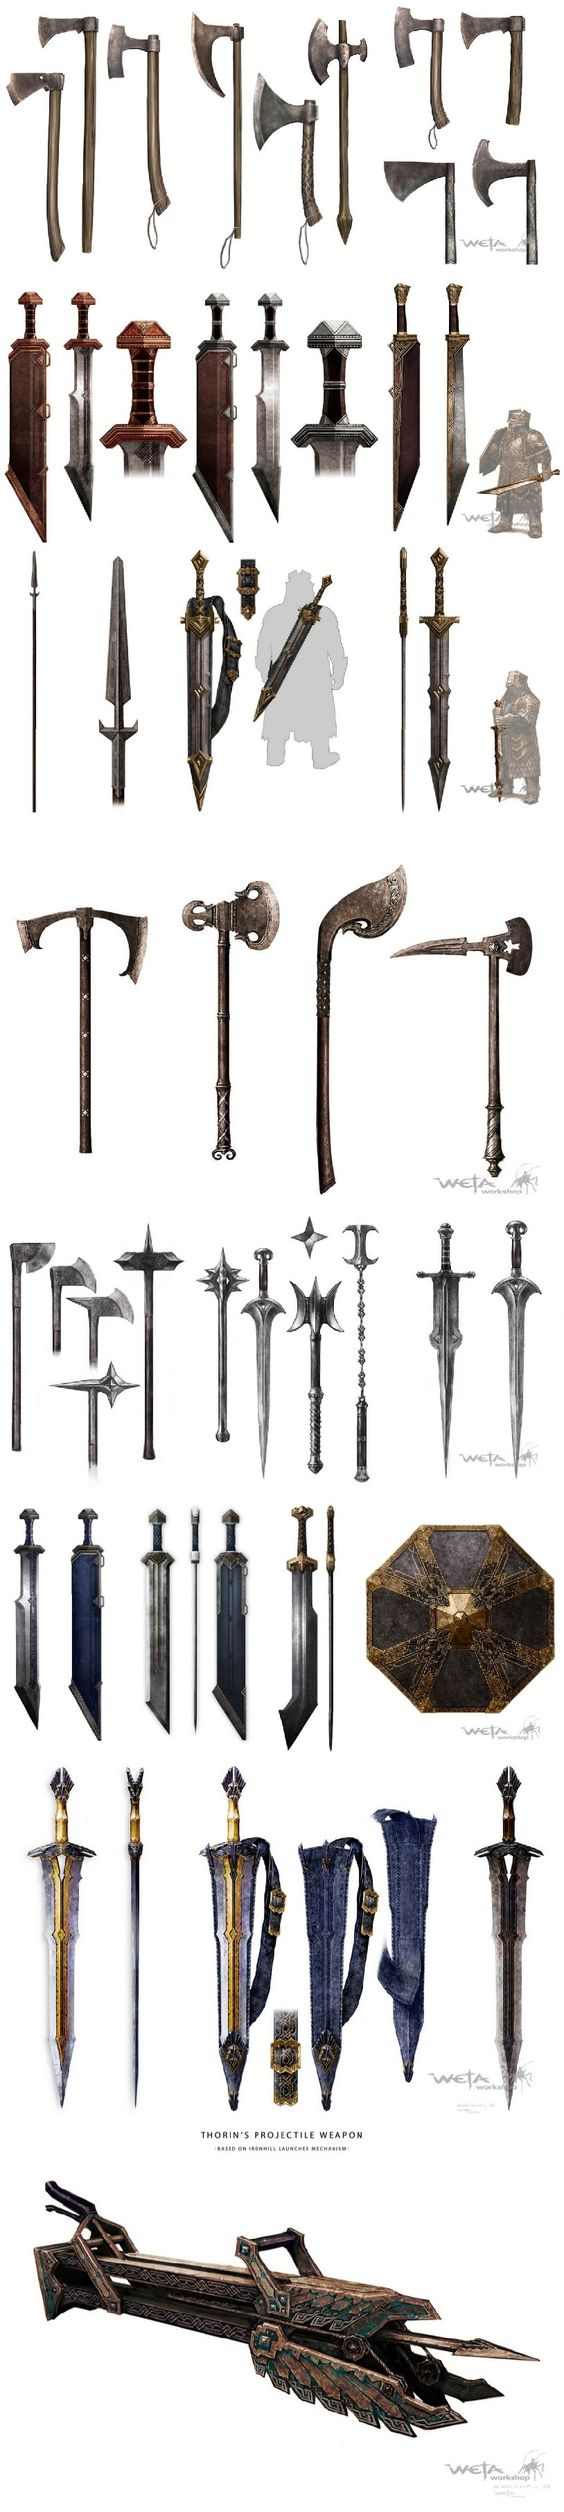 Erebor dwarves weapons concept art ★ || CHARACTER DESIGN REFERENCES™ (https://www.facebook.com/CharacterDesignReferences & https://www.pinterest.com/characterdesigh) • Love Character Design? Join the #CDChallenge (link→ https://www.facebook.com/groups/CharacterDesignChallenge) Share your unique vision of a theme, promote your art in a community of over 50.000 artists! || ★